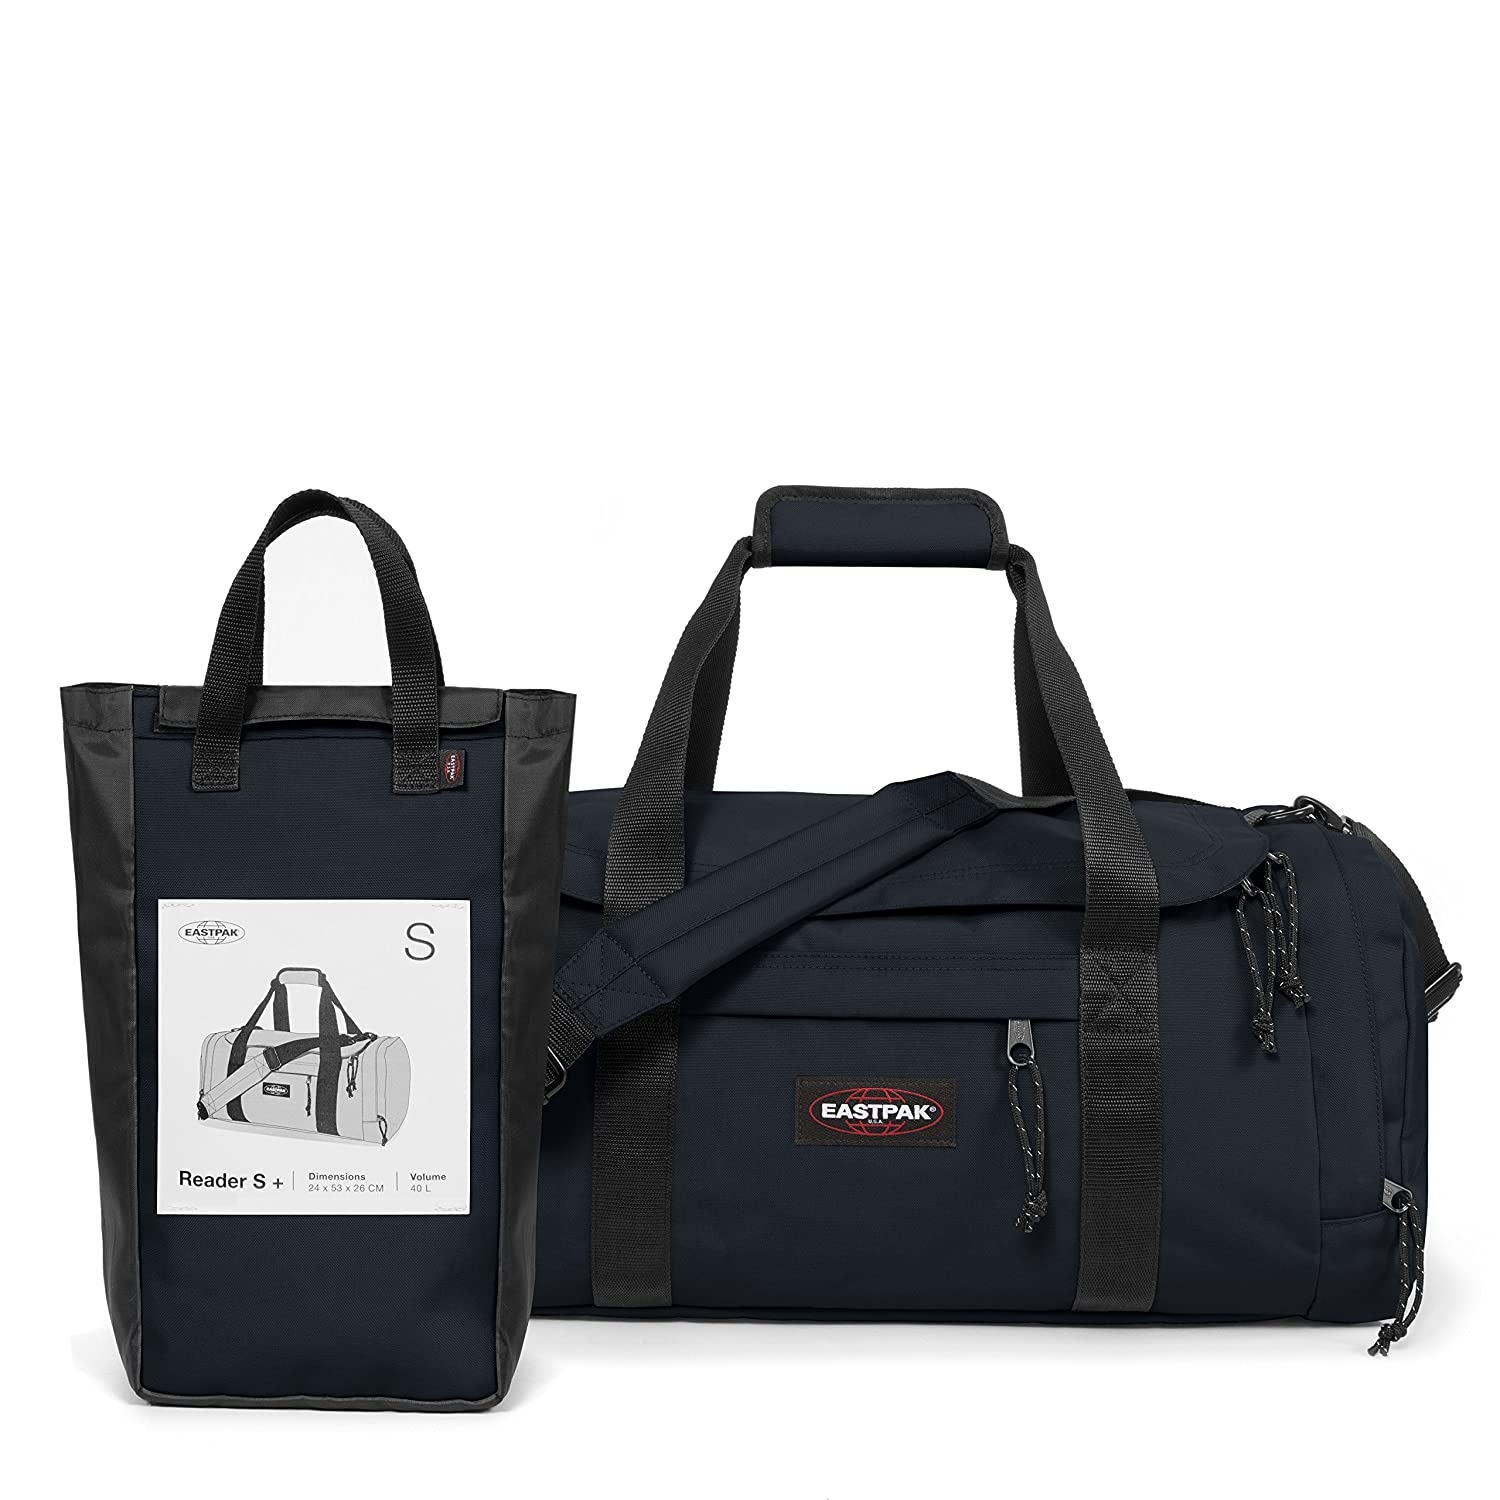 Navy Cm Sac De Eastpak cloud Bleu Liters Voyage S 53 40 Reader tqwwWYfExP